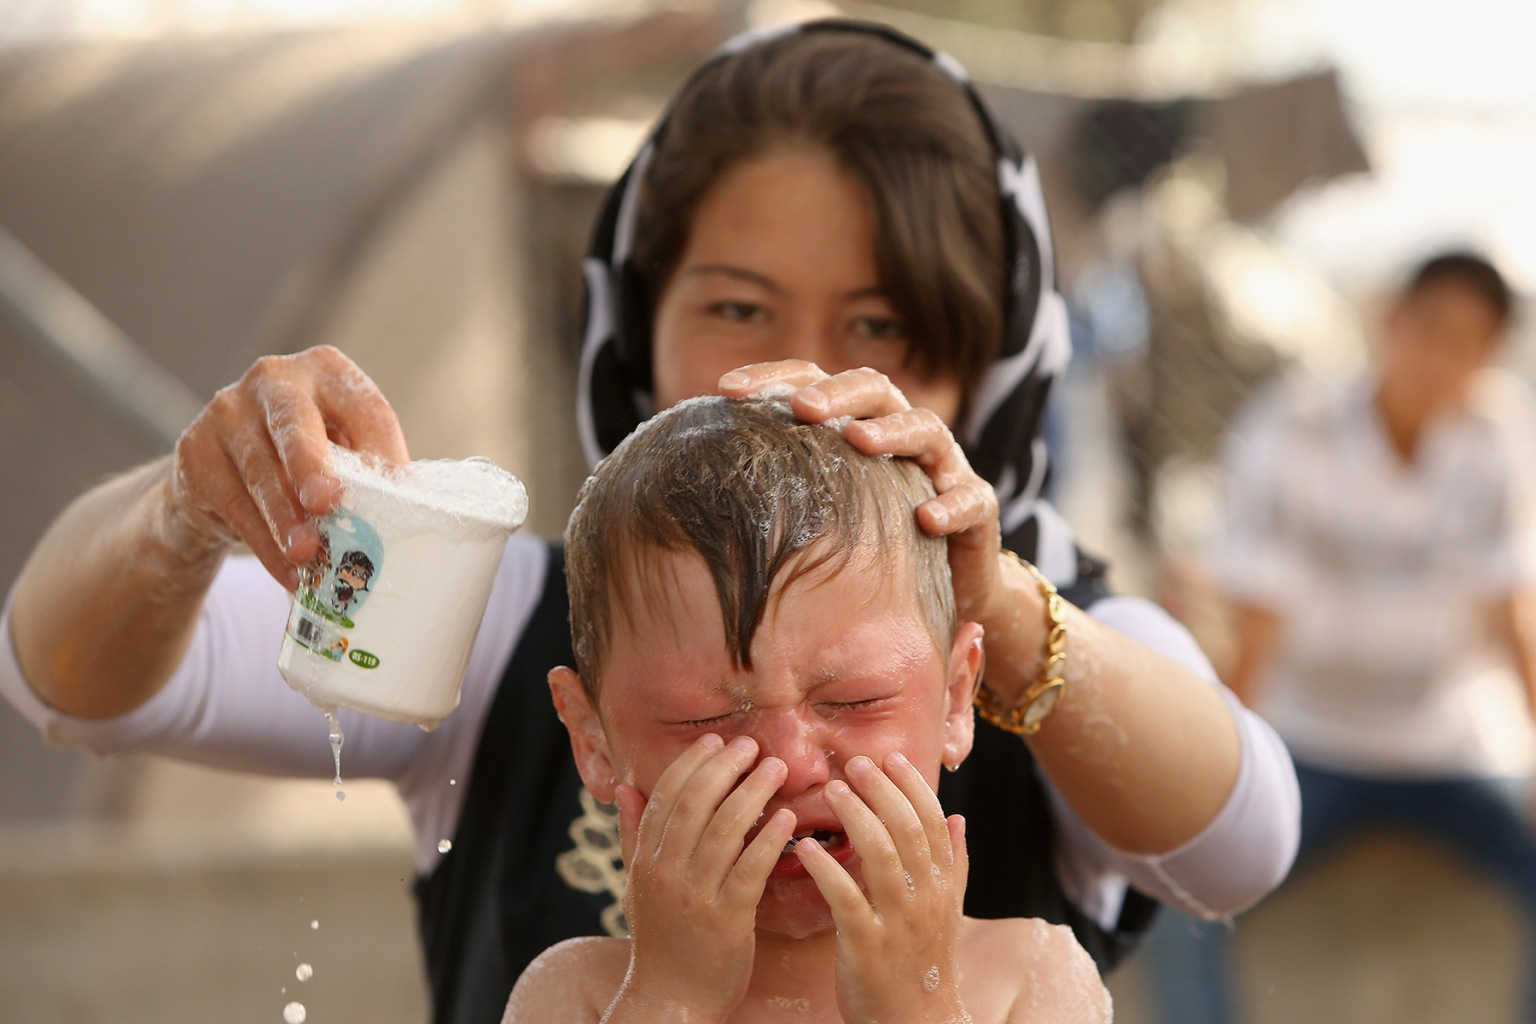 An Afghan woman gives her child a bath May 20 at the Moria refugee camp in Mytilene, Greece. The camp on the Greek island of Lesbos is home to more than 6,000 asylum seekers who crossed the Aegean Sea from Turkey's nearby shore by boat, usually at night to avoid interception. Adam Berry/Getty Images